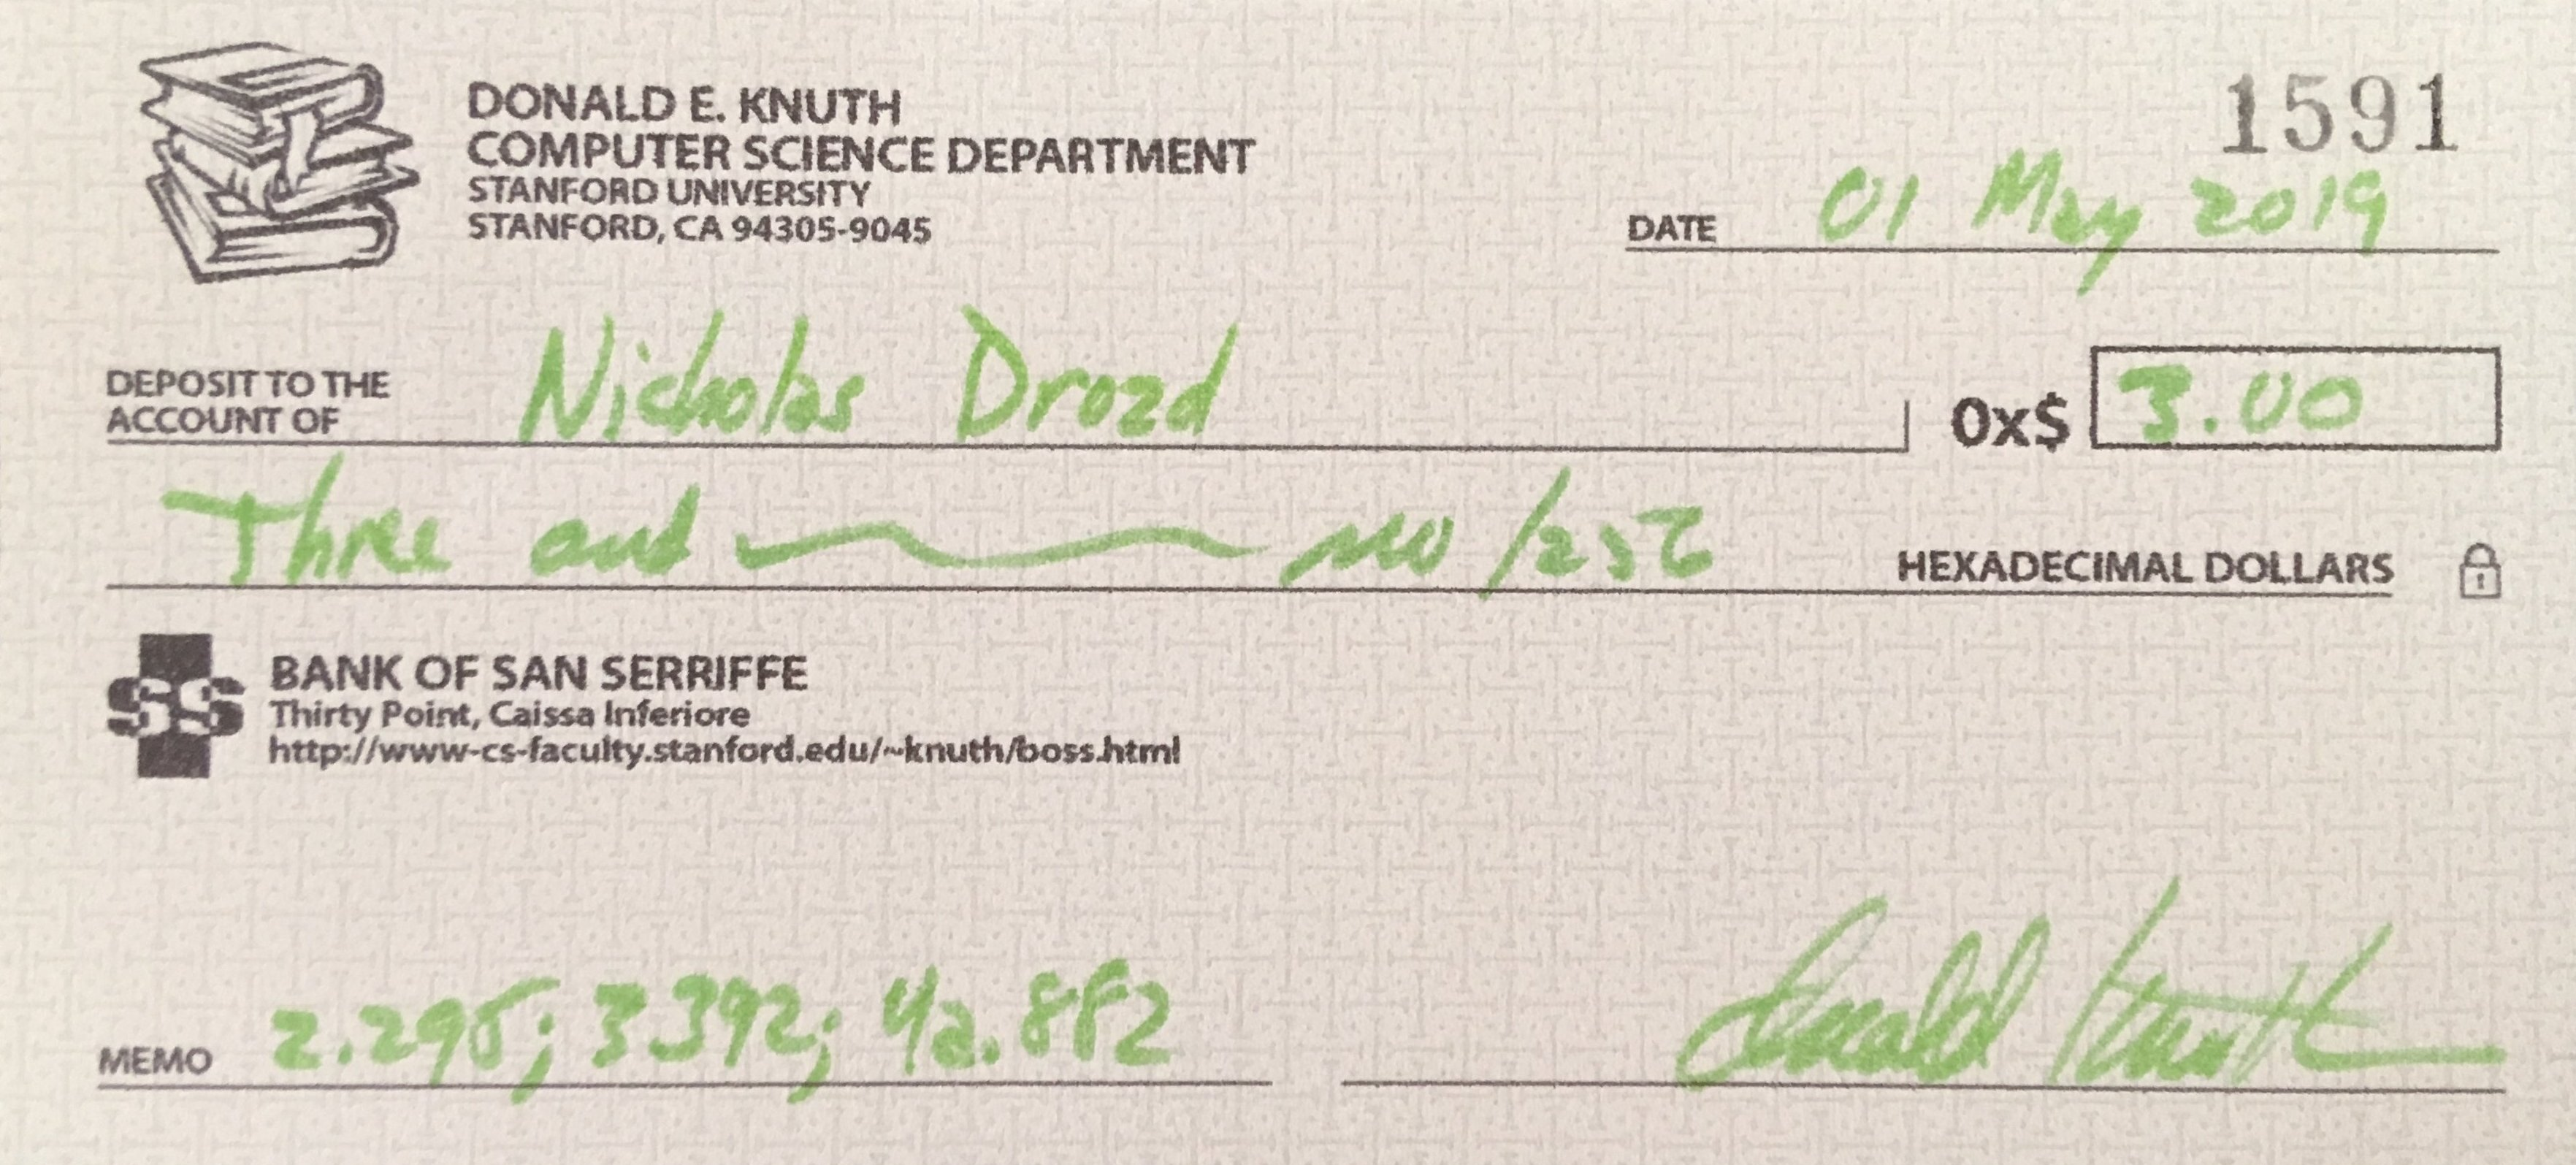 I Got a Knuth Check for 0x$3 00 | Something Something